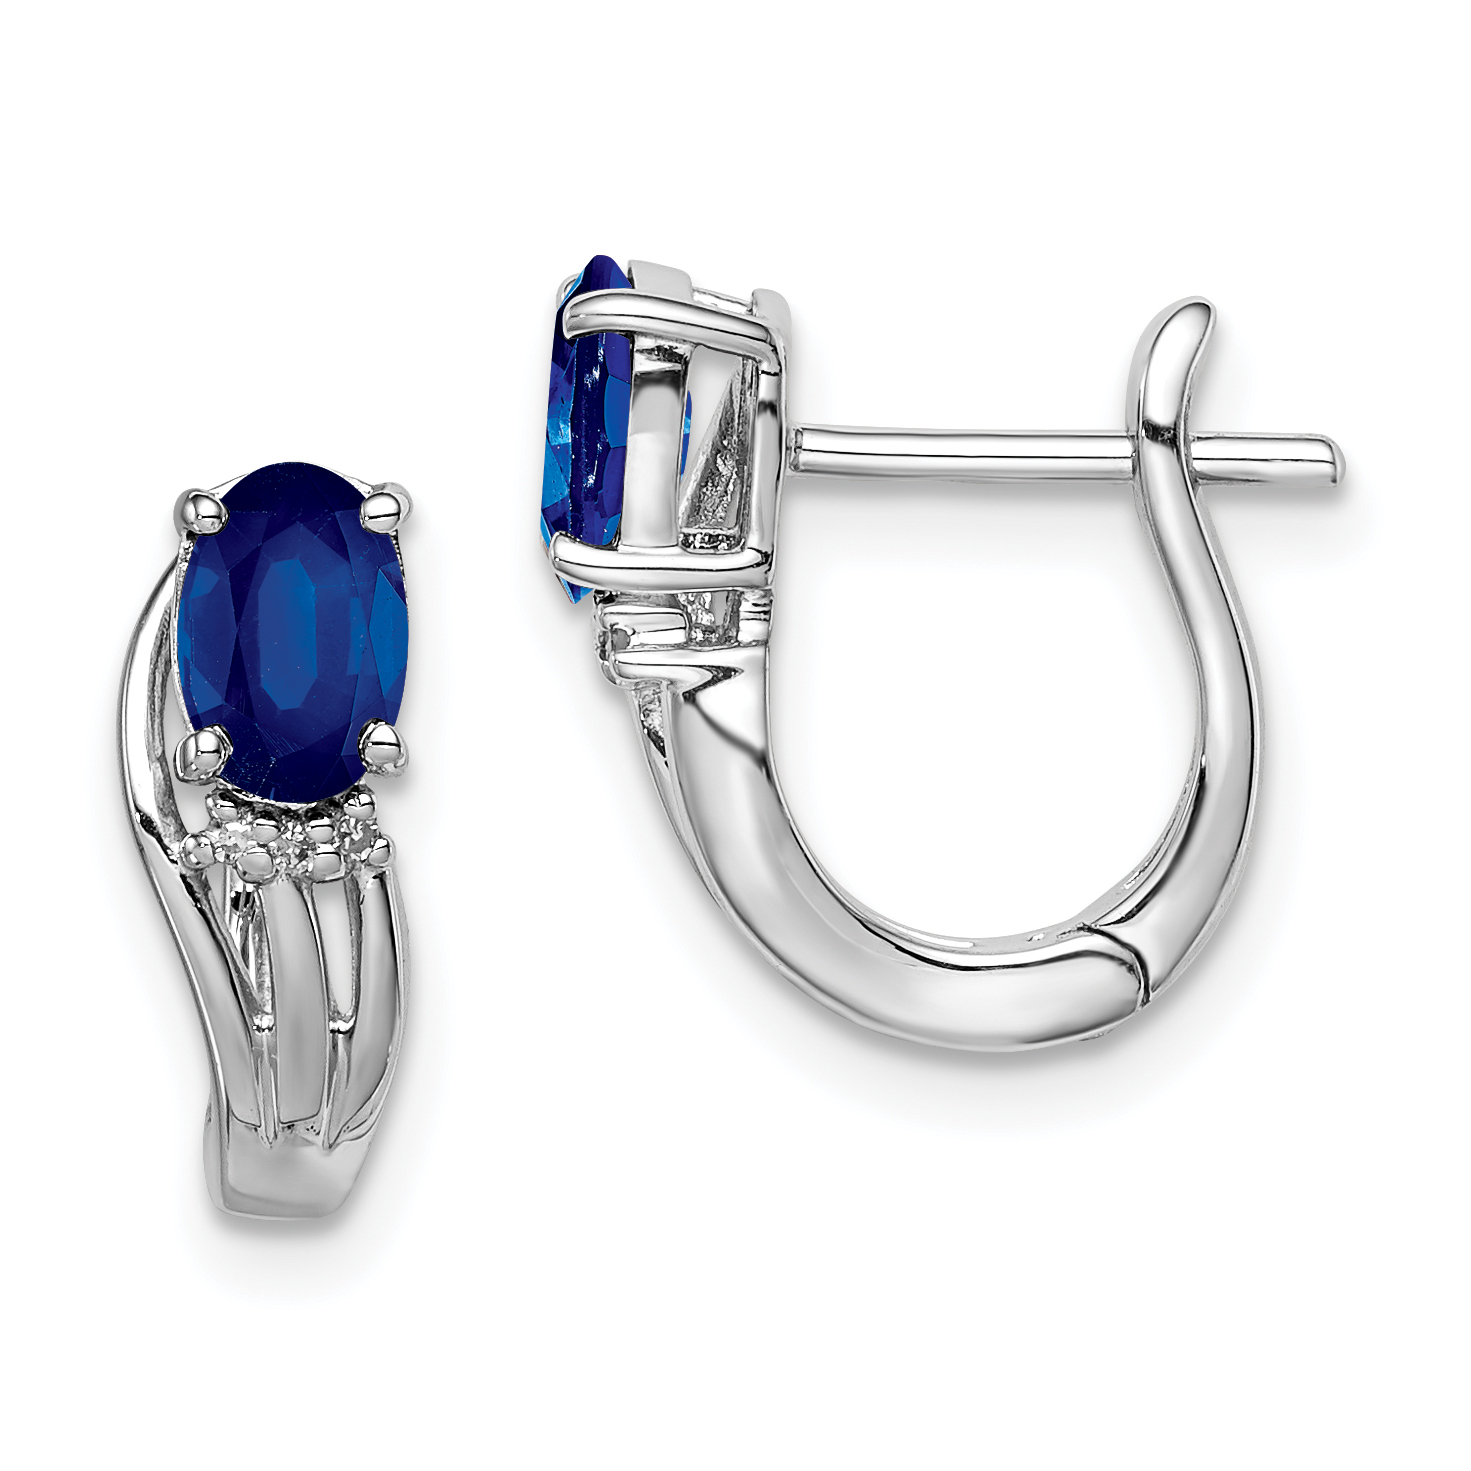 Sterling Silver Rhodium Plated Diamond & Sapphire Hinged Earrings QE9955S - image 2 de 2